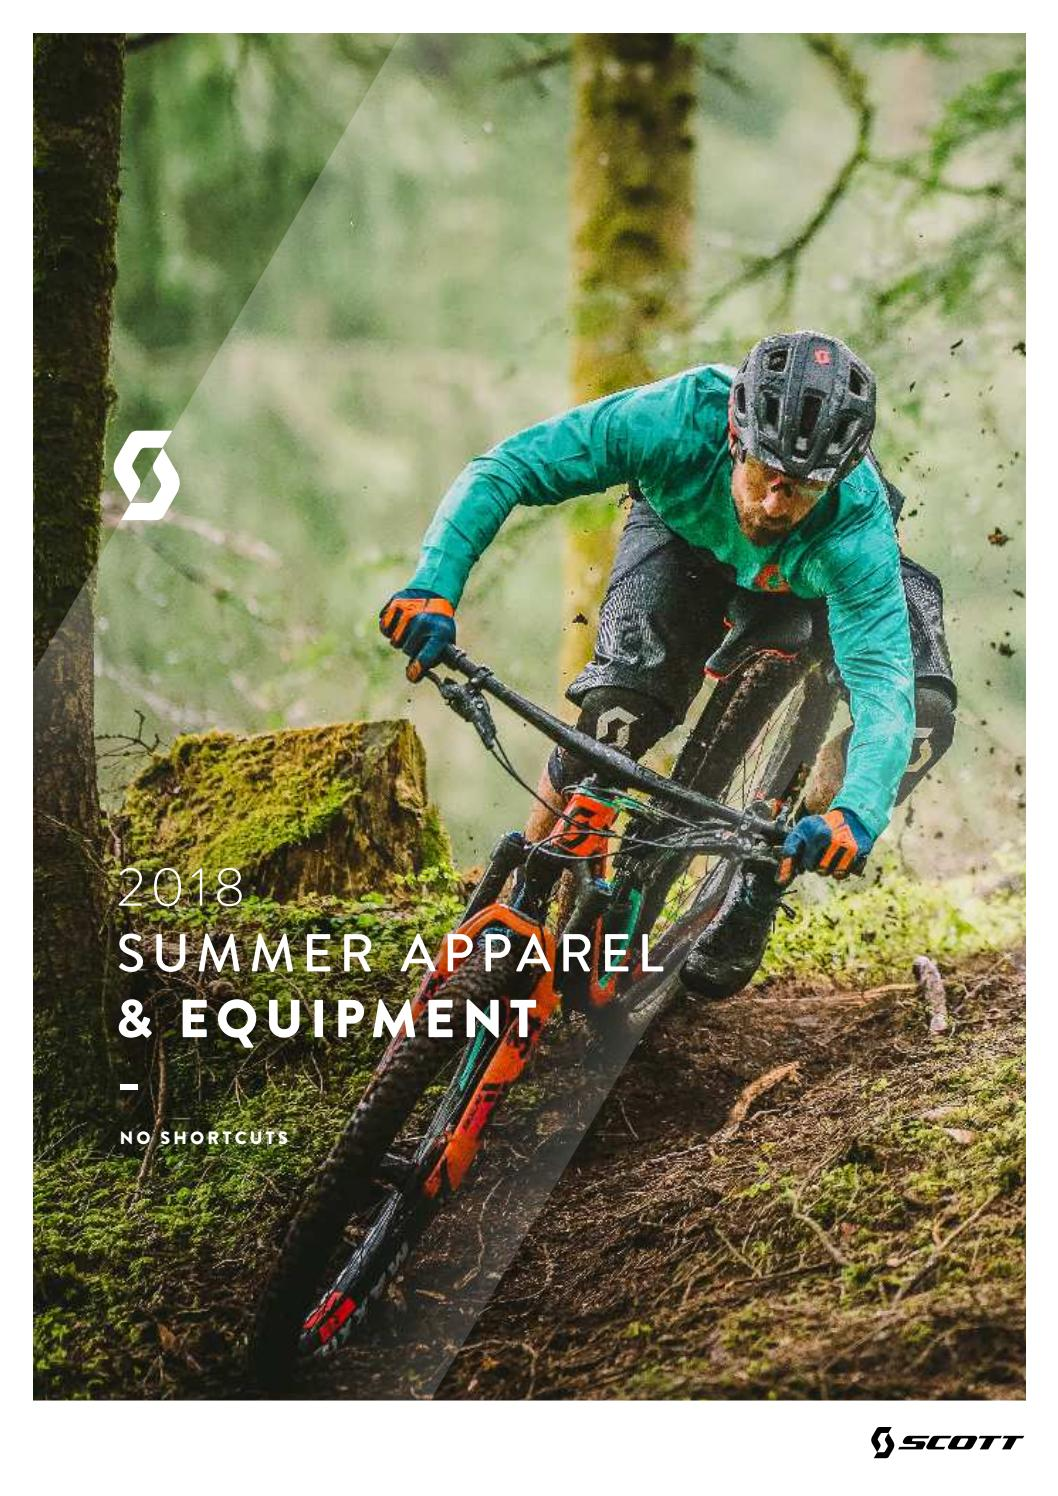 Catalogue Accessoires 2018   Scott Cycles Sports by Cindy Denizard  CyclesSports - issuu 6a78136654e5